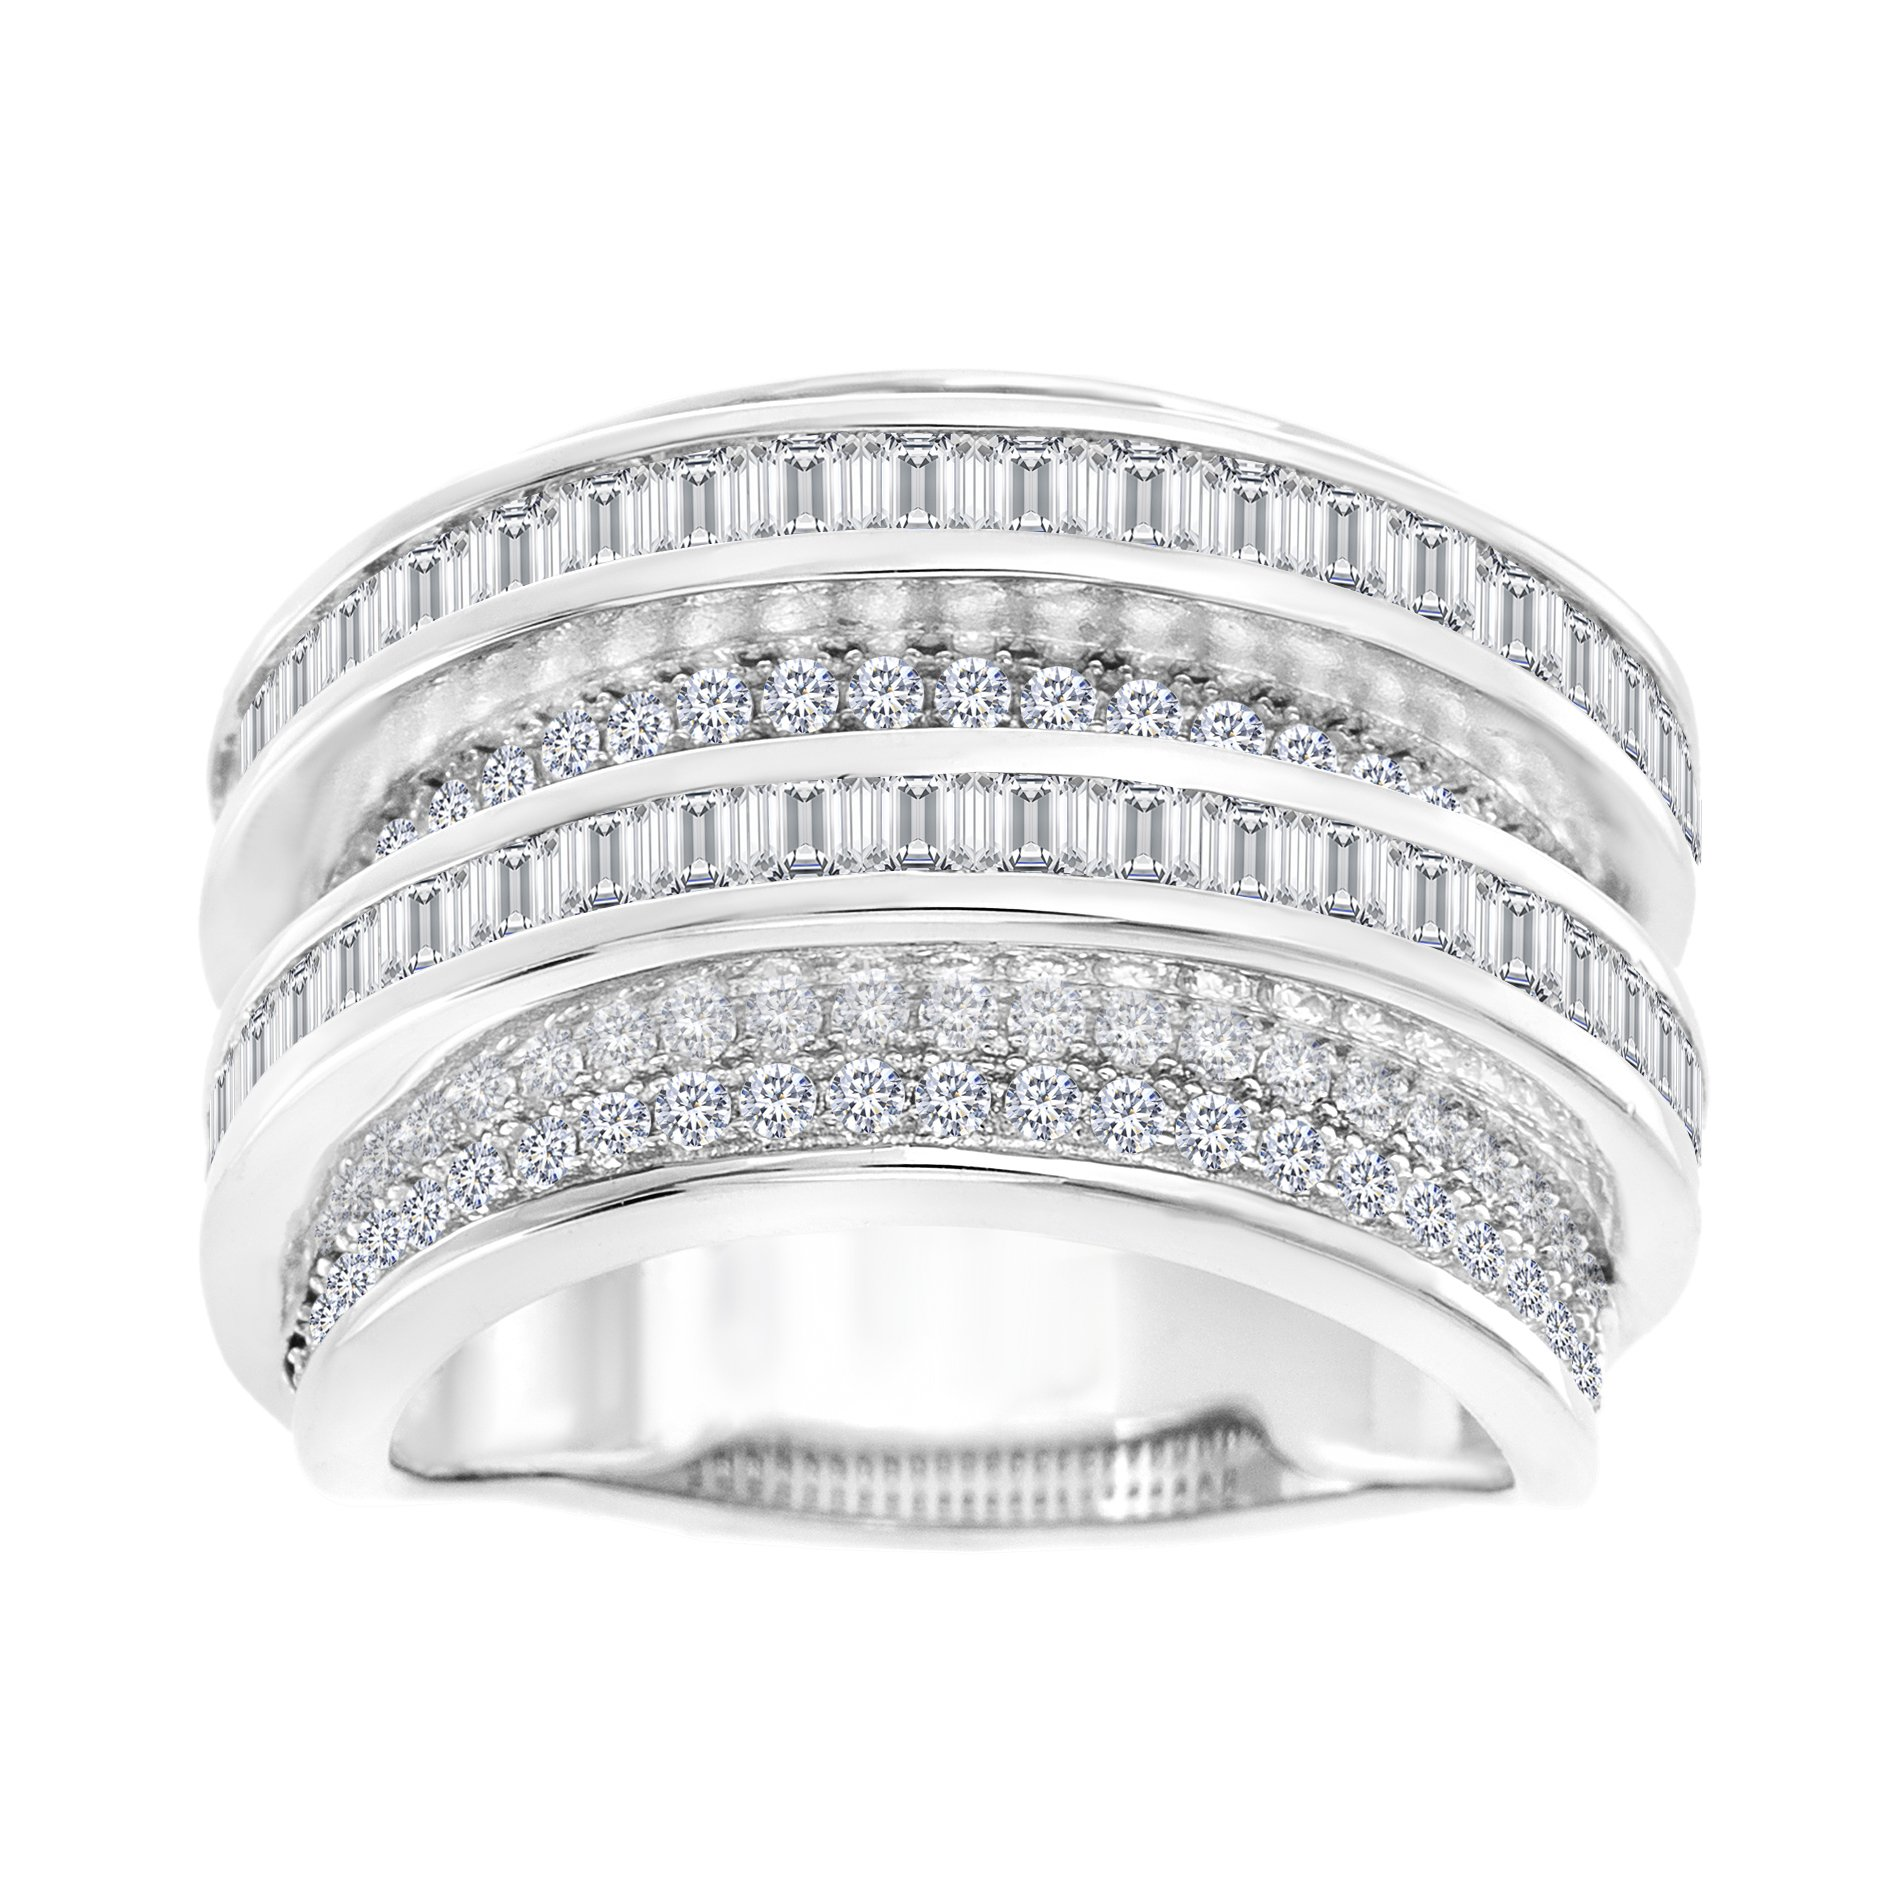 Mia Sarine Cubic Zirconia Round Border and Baguette Center Eternity Band in Rhodium over Sterling Silver Size 8